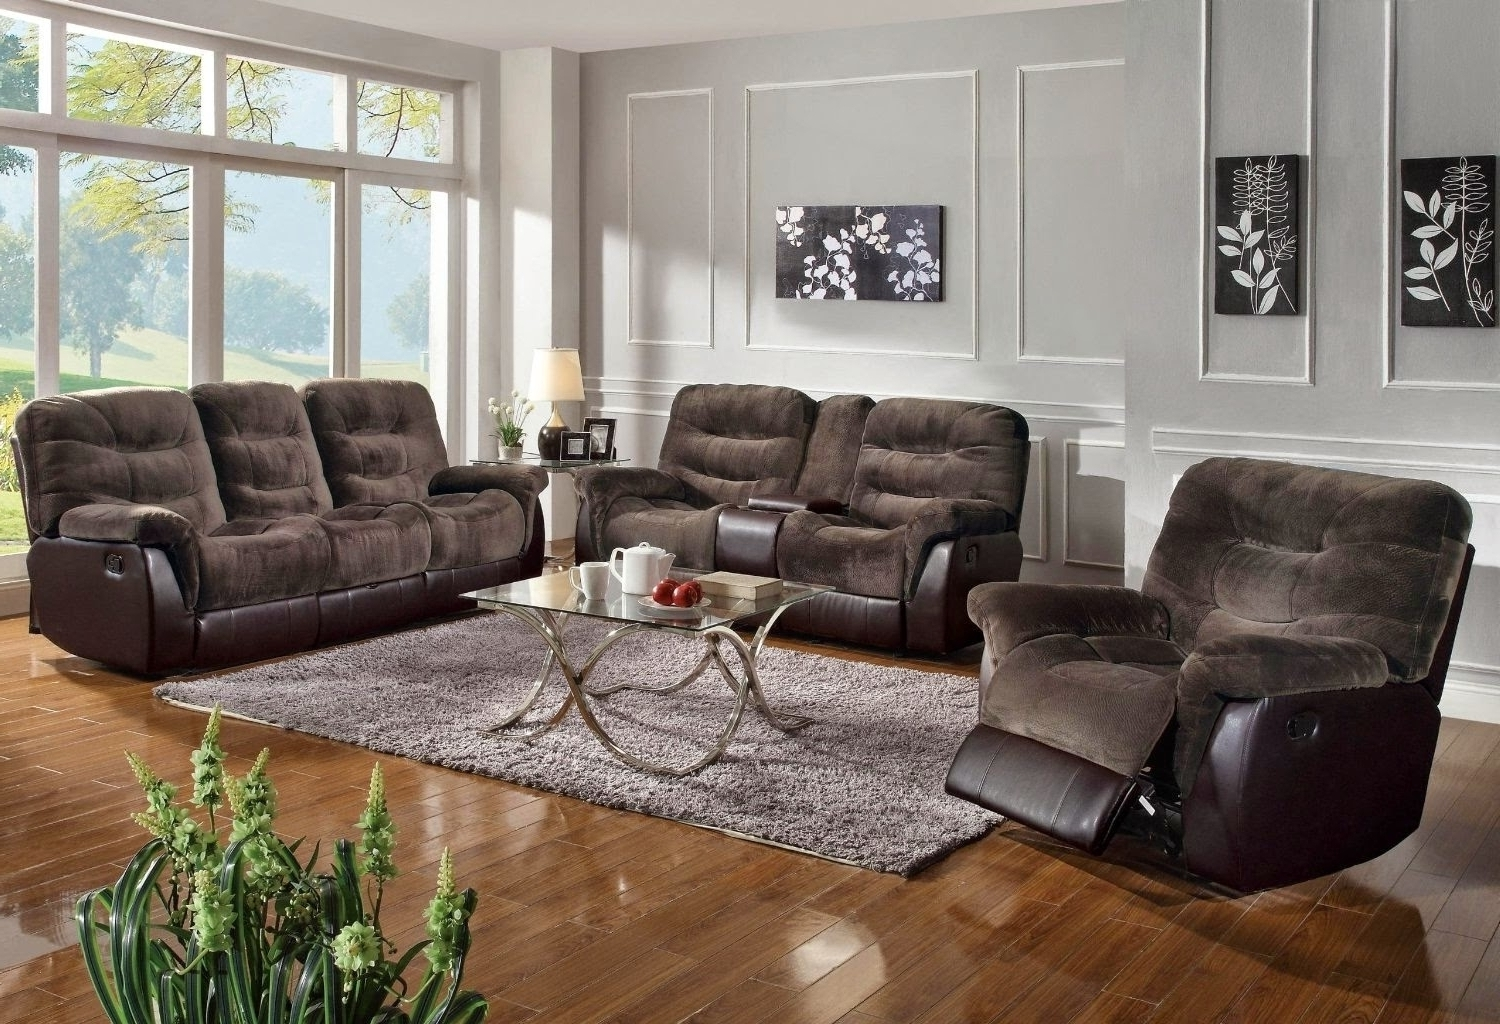 Sectional Sofas For Small Spaces With Recliners Intended For Widely Used Furniture Reclining Sectional Sofas For Small Spaces Reclining (View 11 of 20)